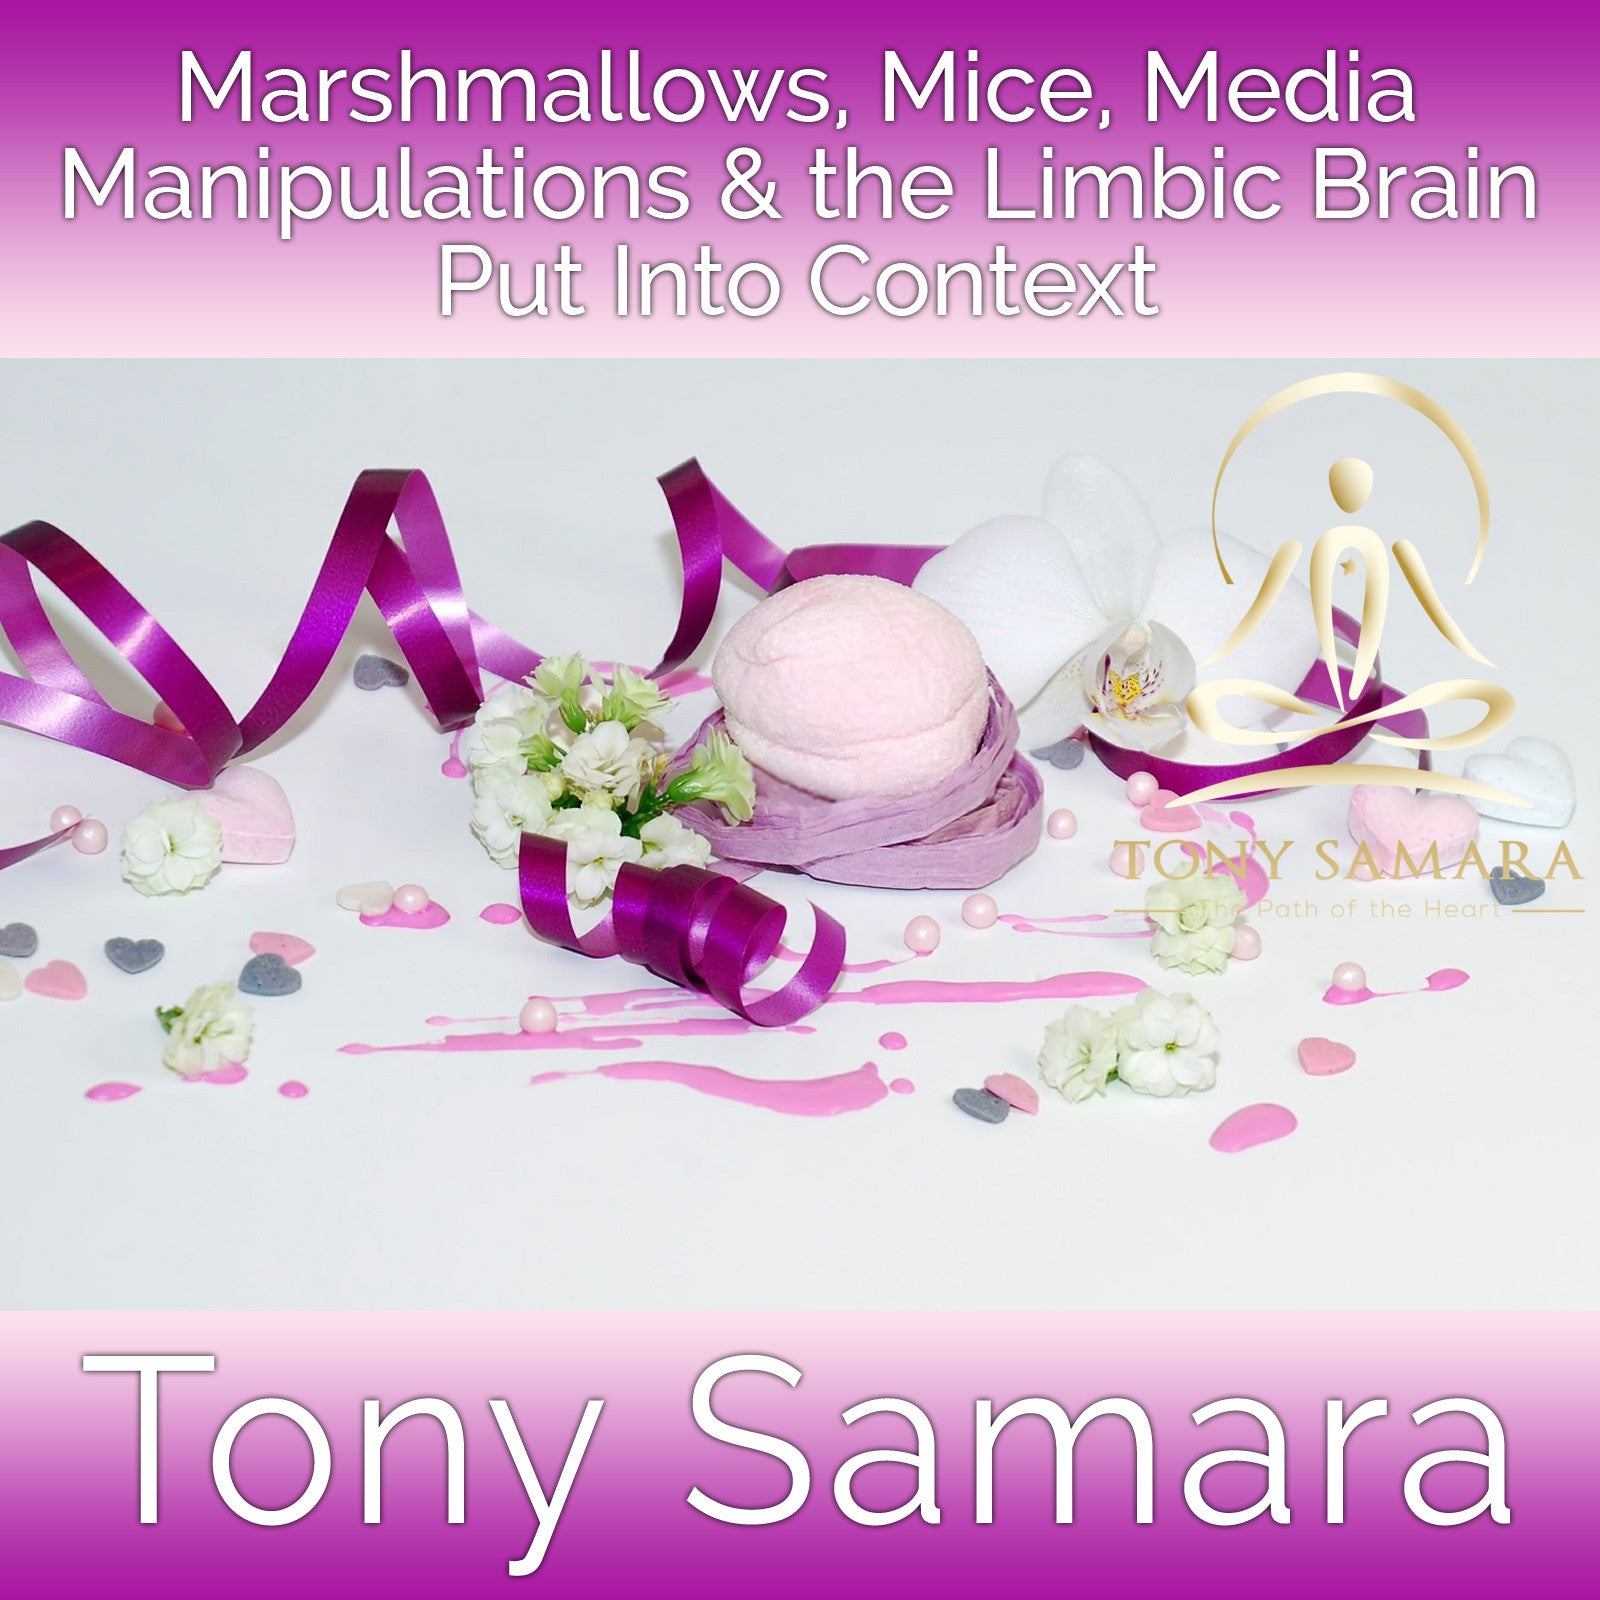 Marshmallows, Mice, Media Manipulations & the Limbic Brain Put Into Context (MP3 Audio Download) - Tony Samara Meditation